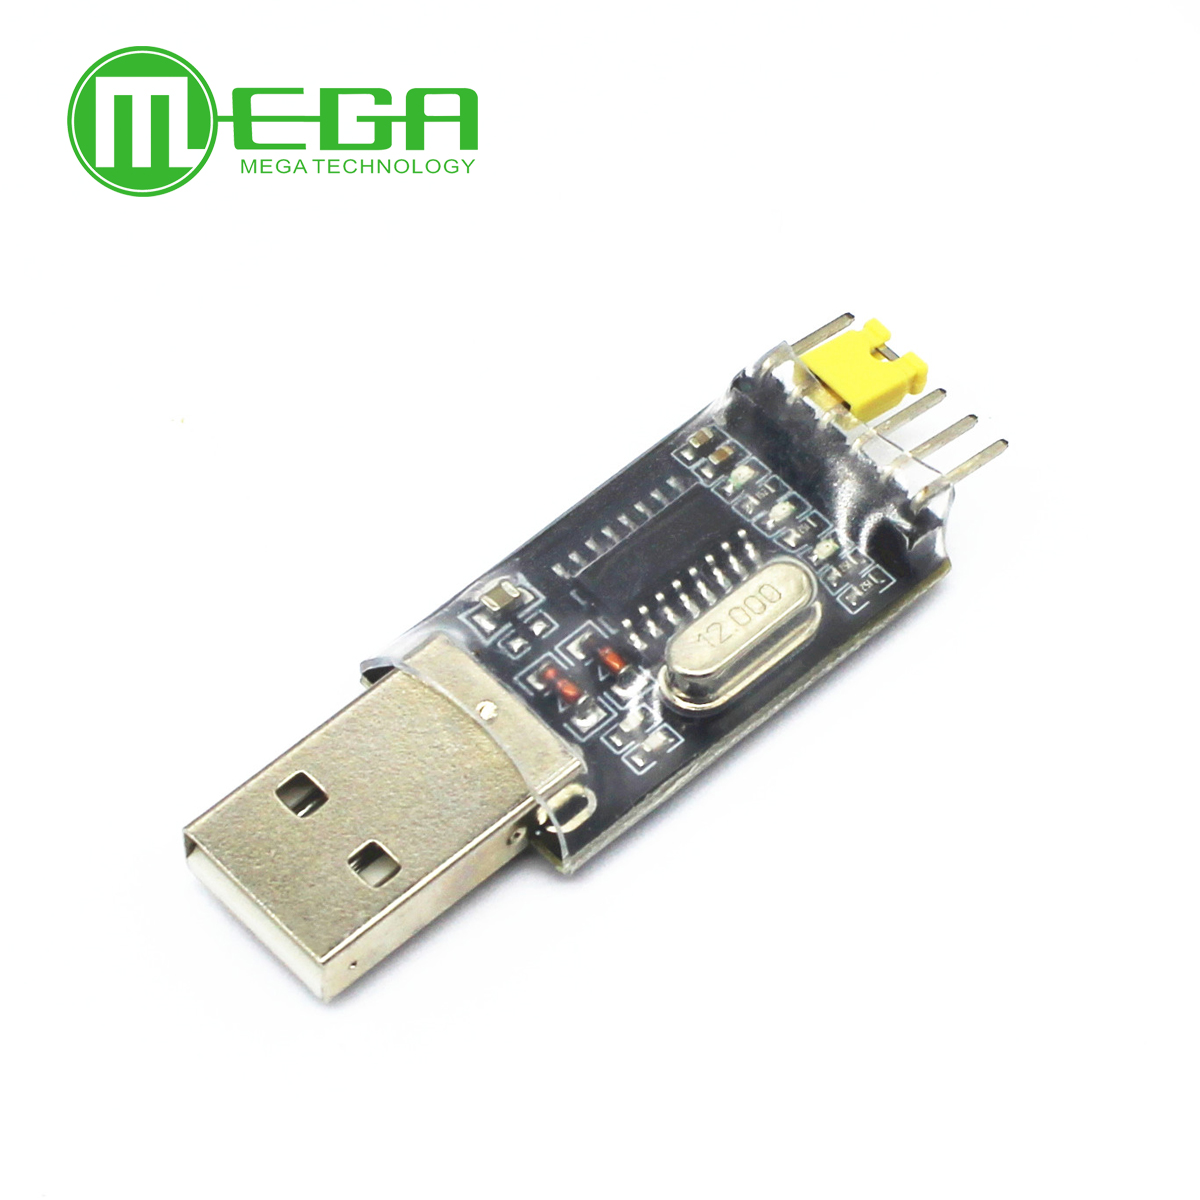 2PCS USB To TTL RS232 CH340G Converter Módulo Adapter Replace Pl2303 CP2102